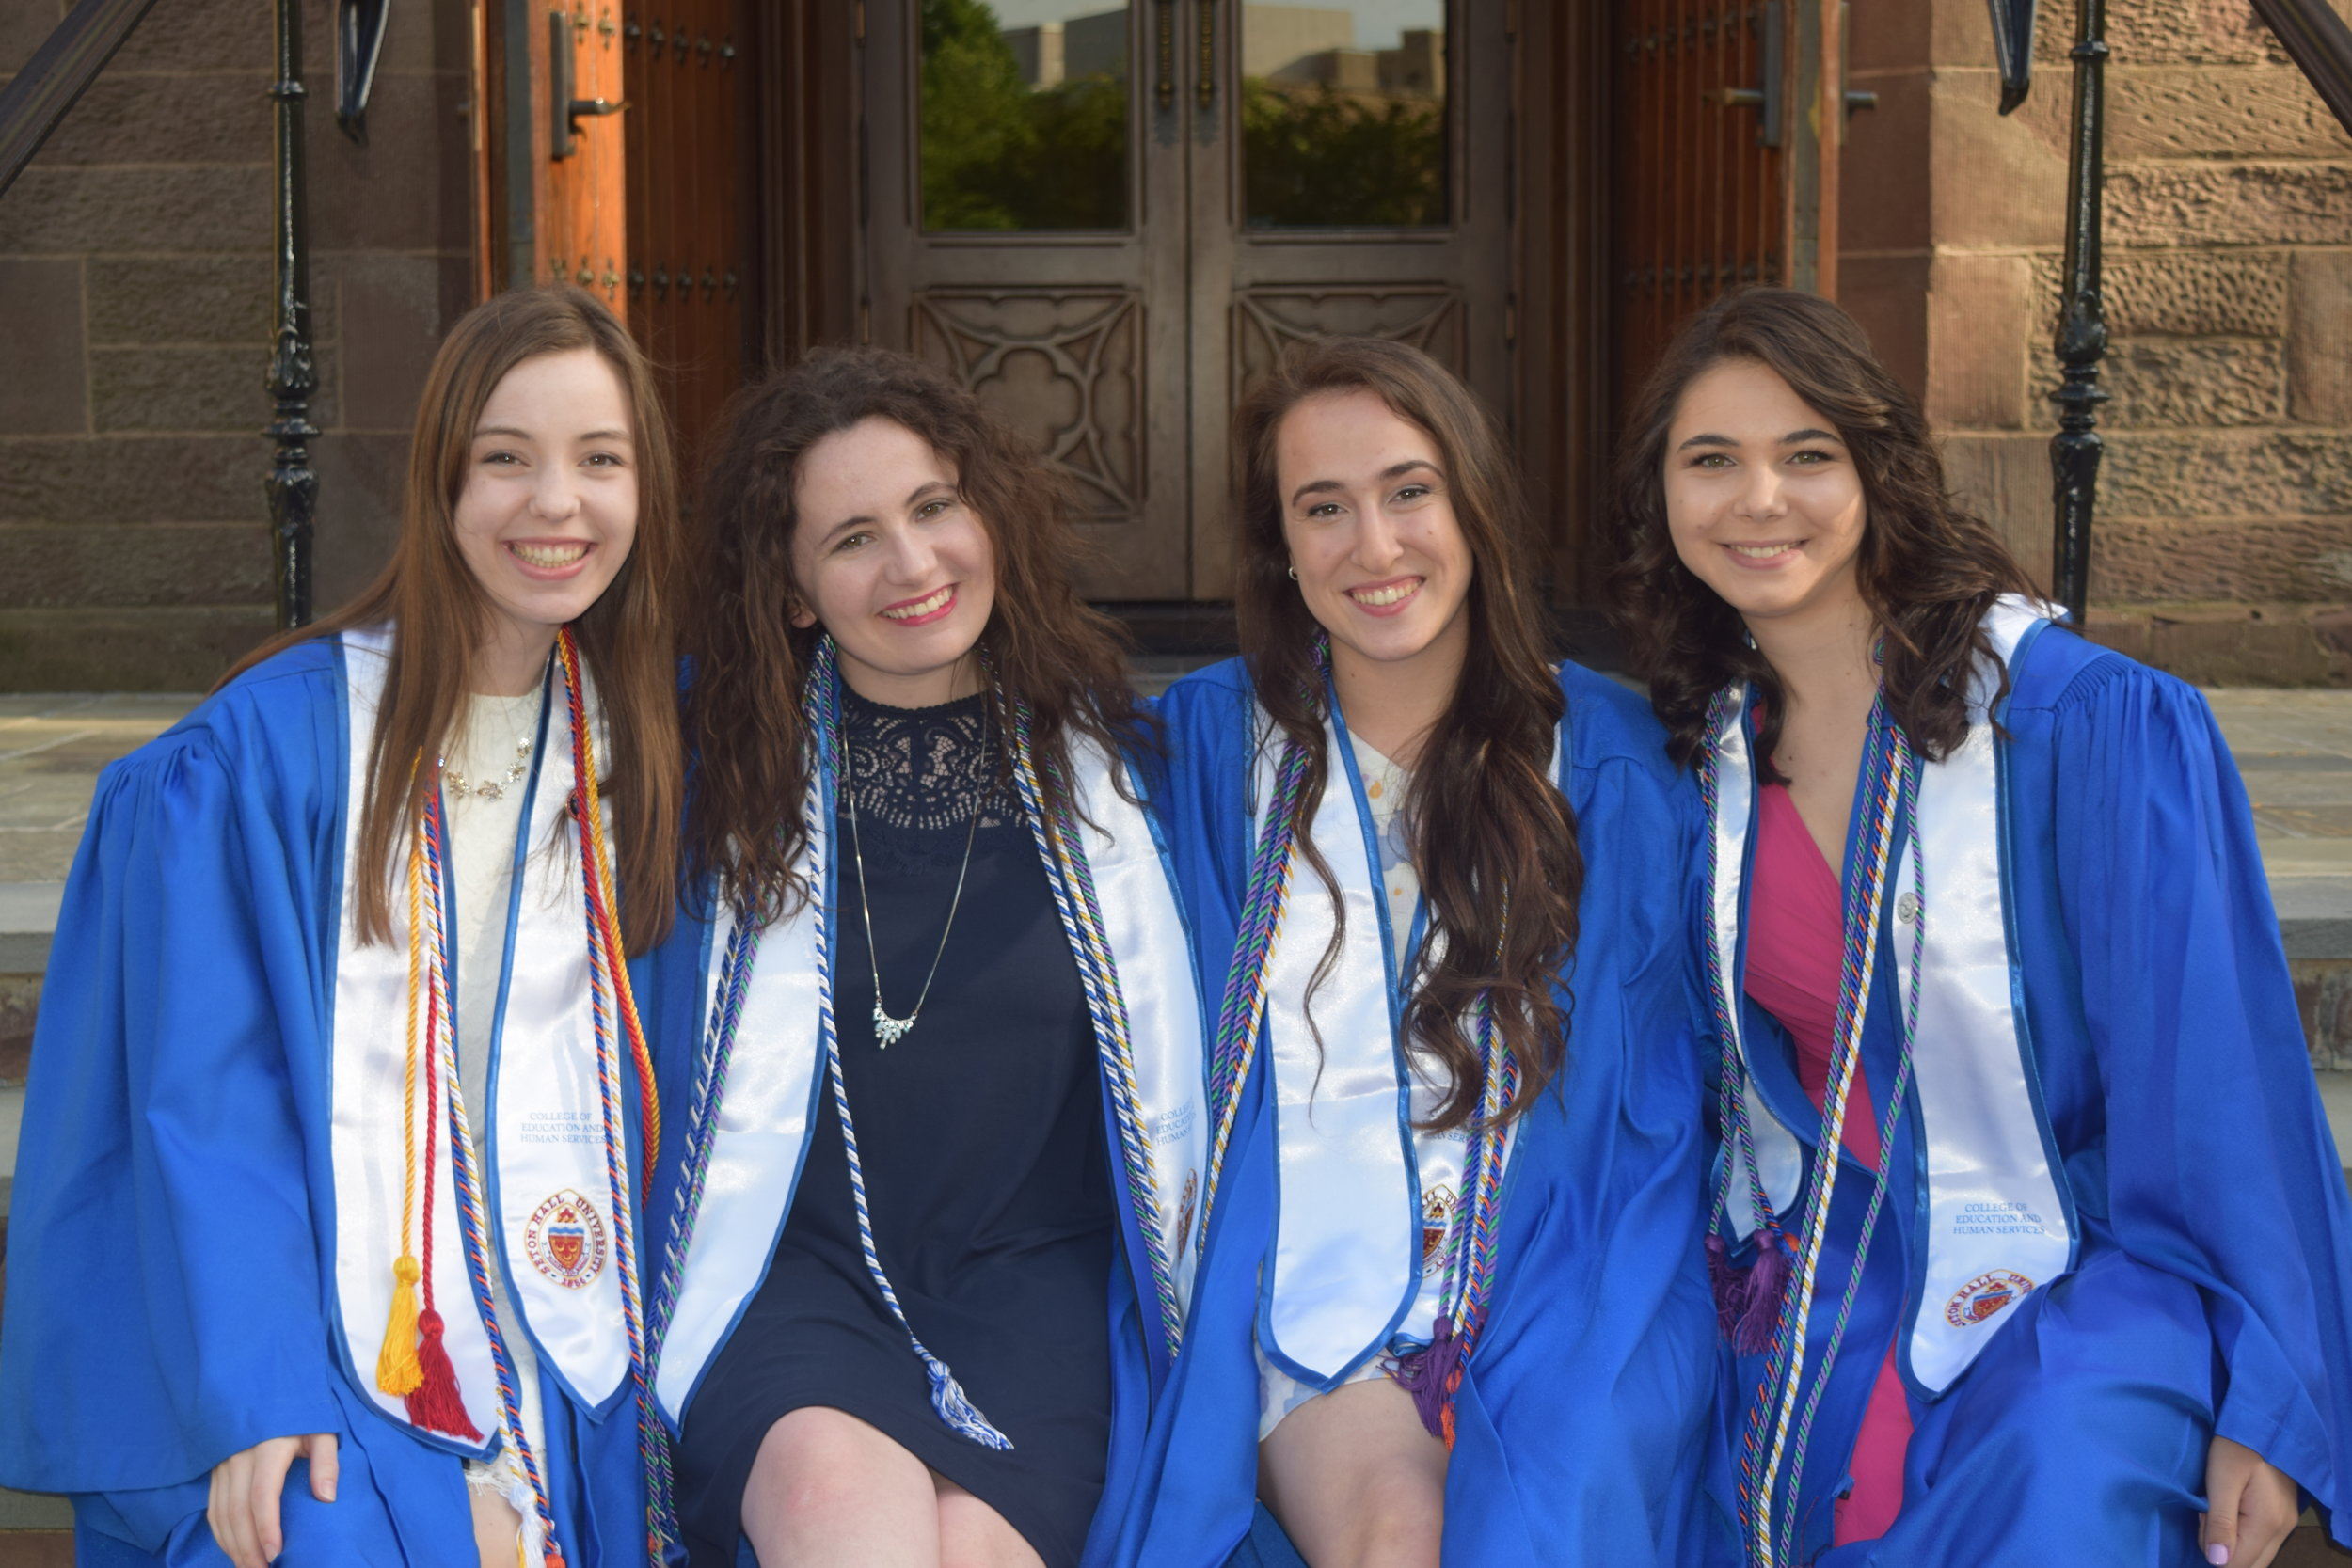 Seton Hall Summa Cum Laude in Early Childhood, Elementary, Special Ed, and Environmental Studies